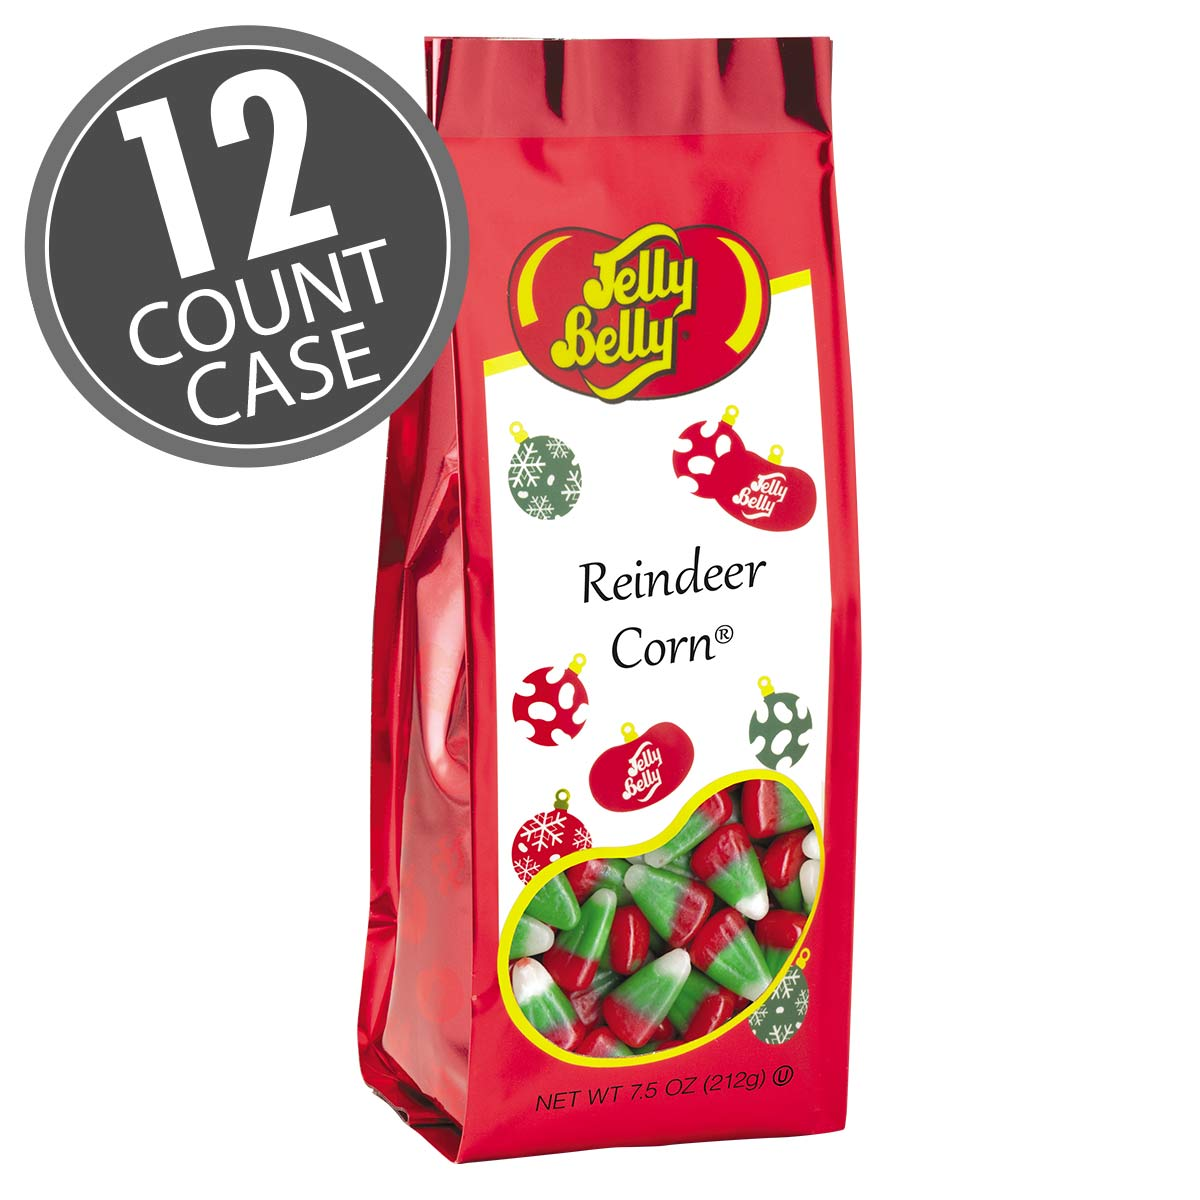 Reindeer Corn® - 7.5 oz Gift Bag - 12-Count Case